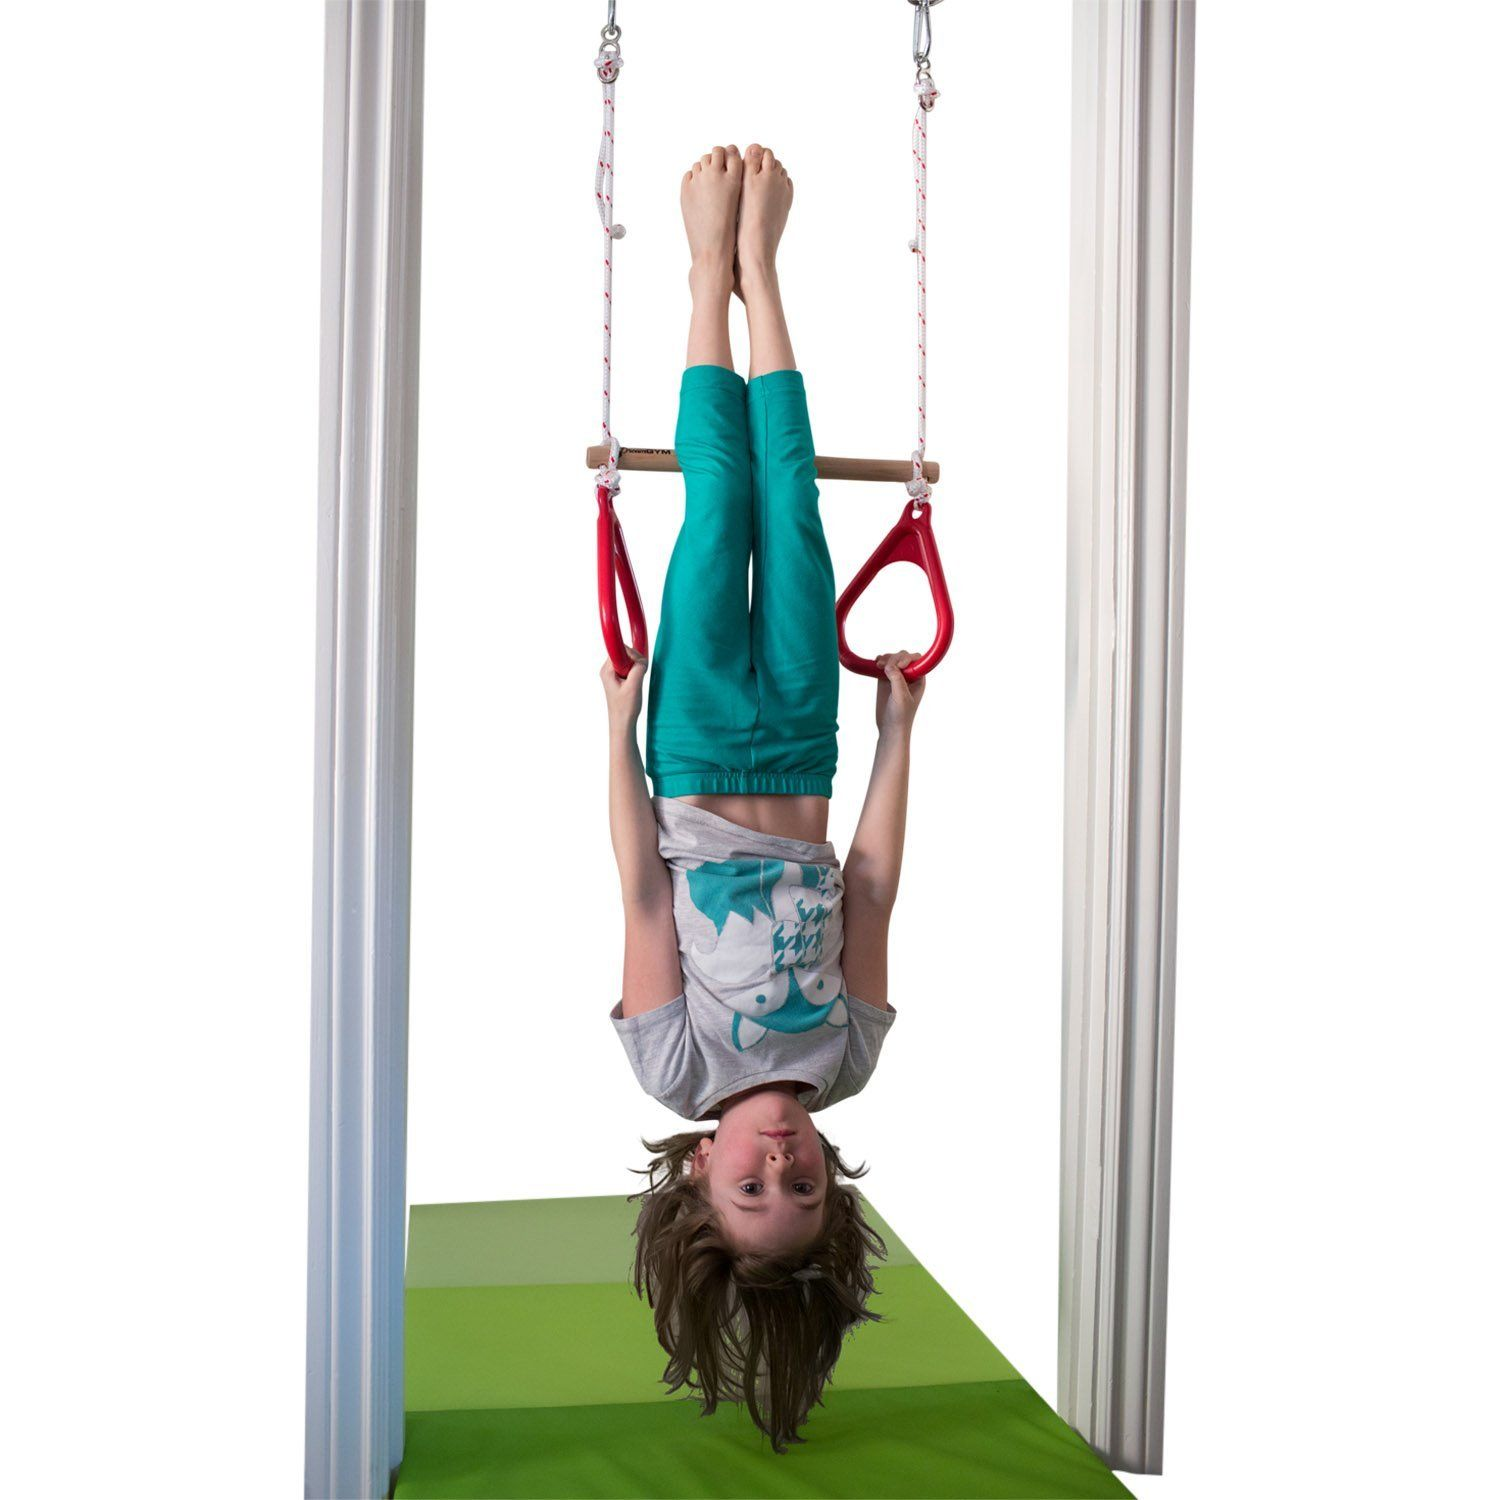 Amazoncom Indoor Swing By Dreamgym - Trapeze Bar And Gymnastic